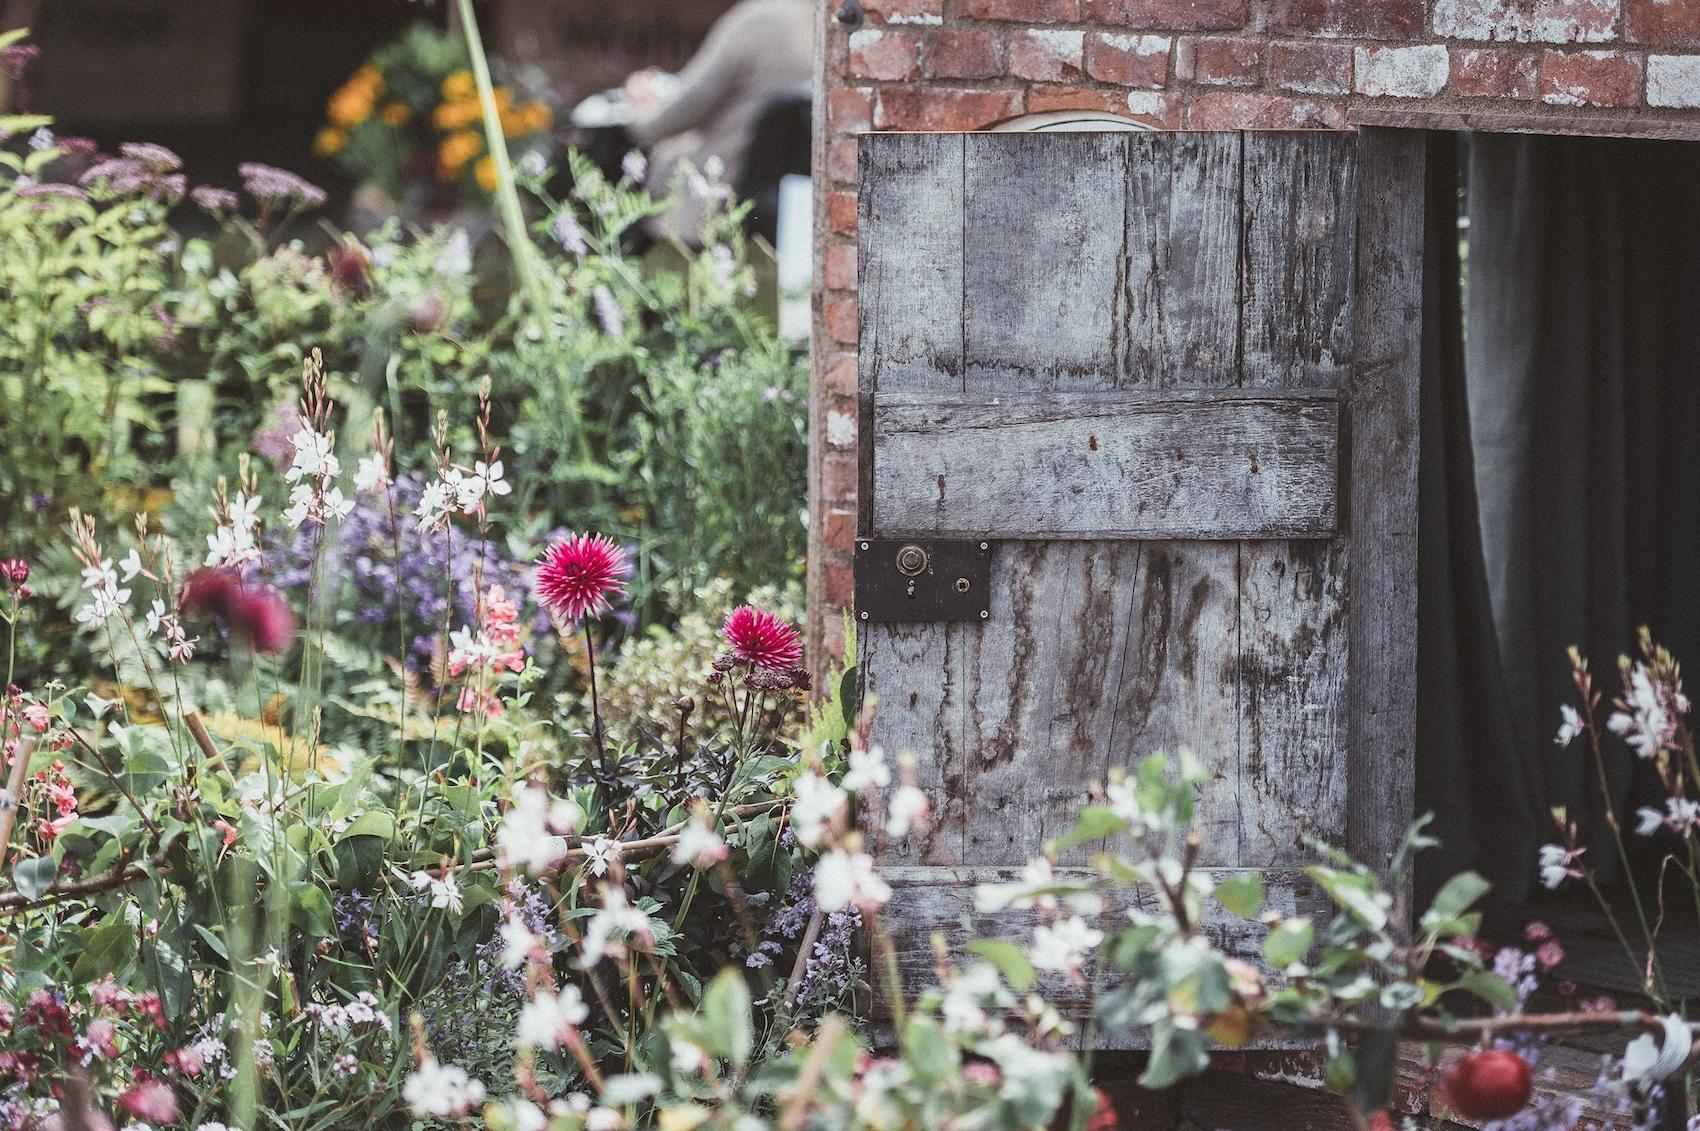 Ocean-Friendly Gardening Guide: How Your Yard Can Save Our Waterways